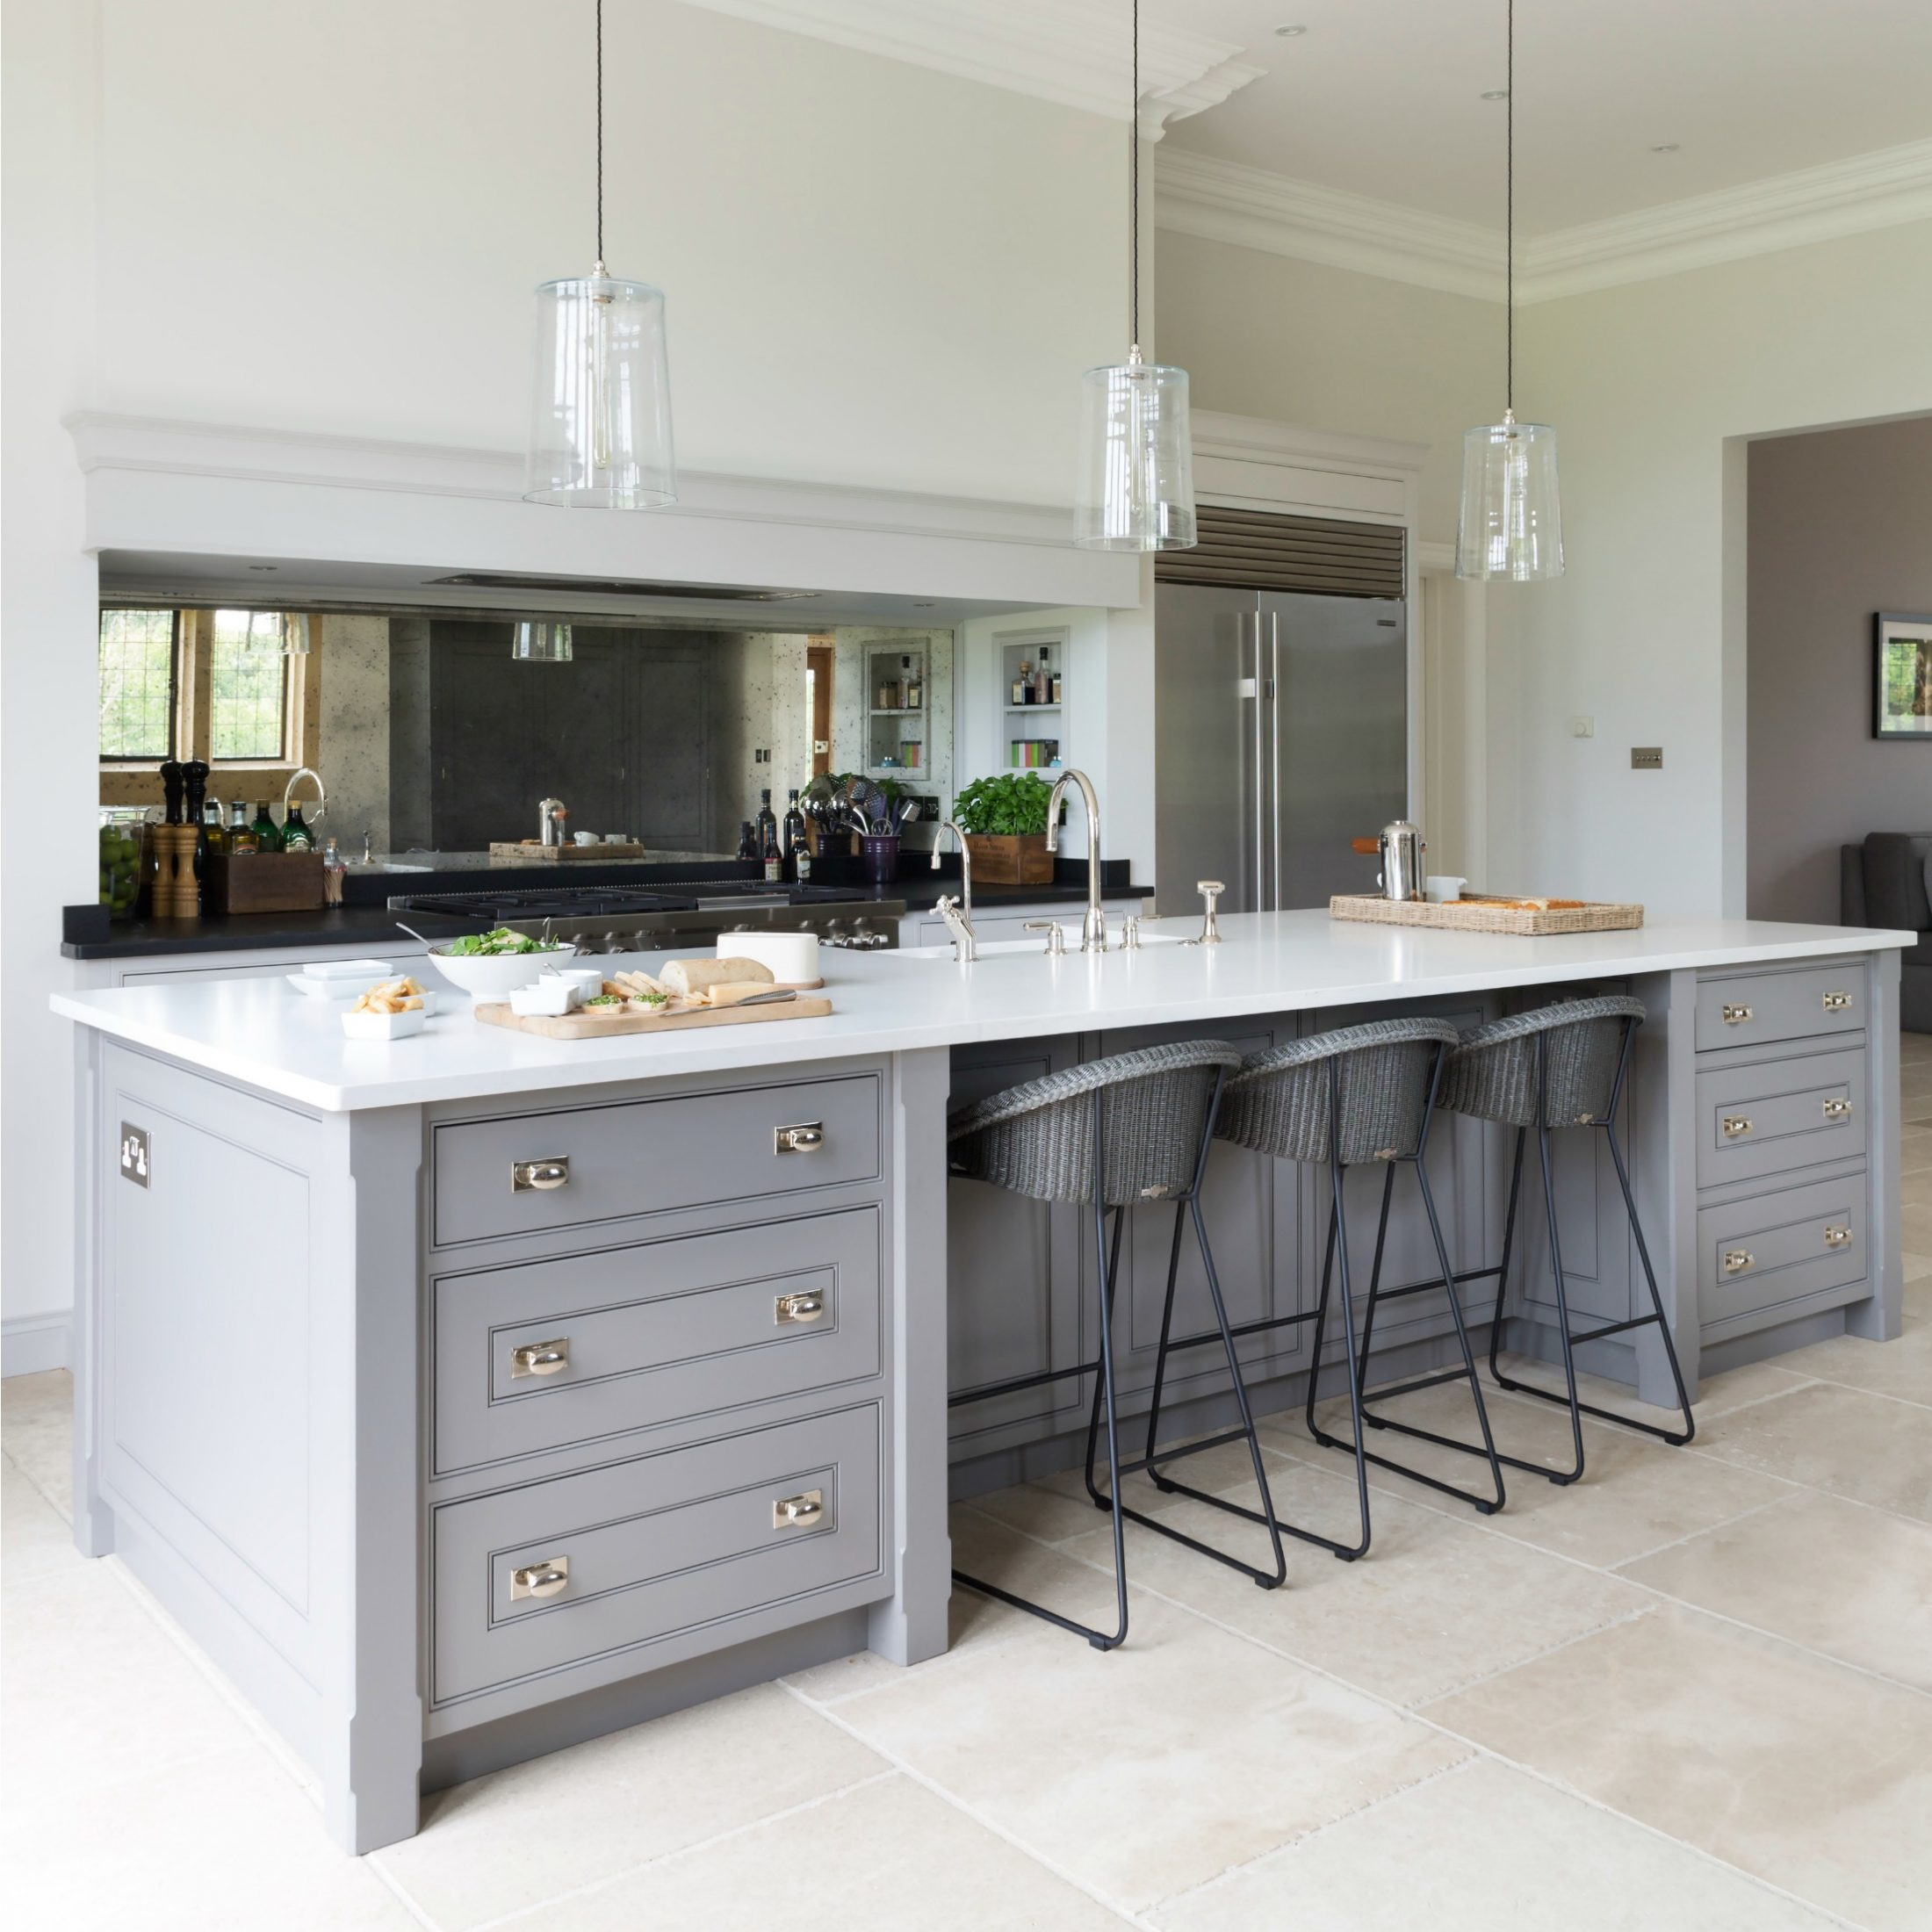 The Grange, Ascot Berkshire - Luxury Bespoke Kitchen - Humphrey Munson